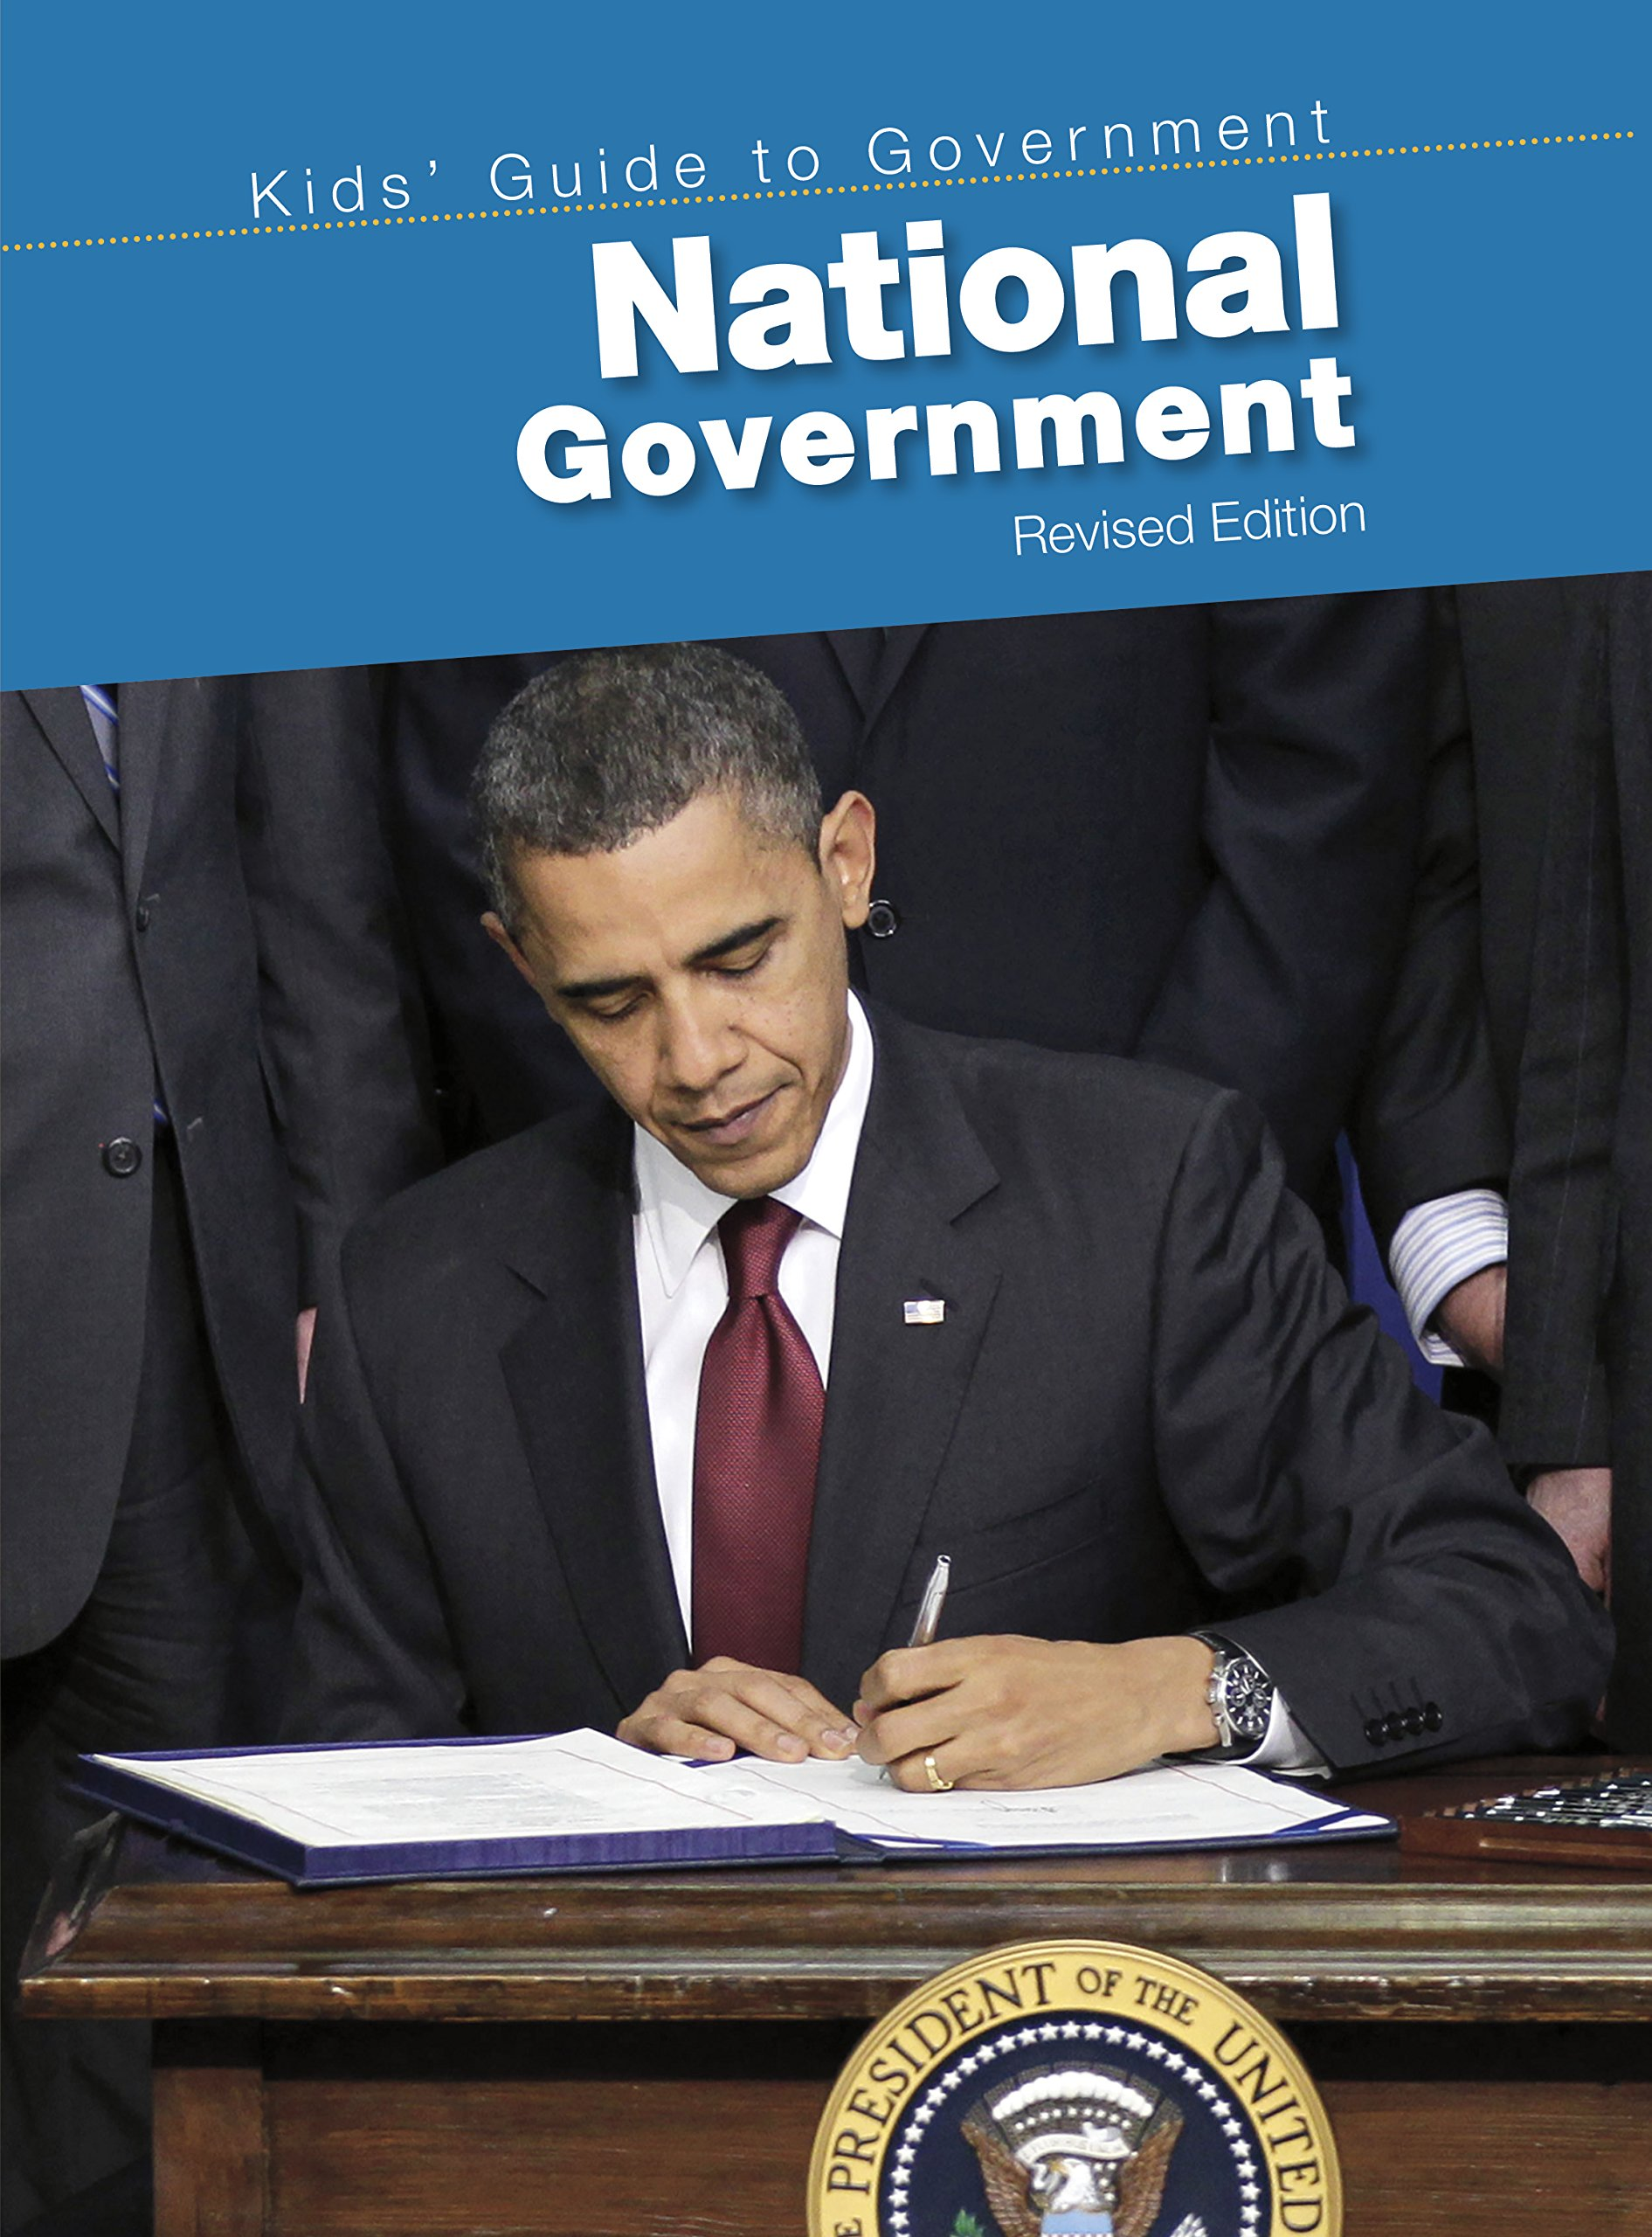 National Government (Kids' Guide to Government)